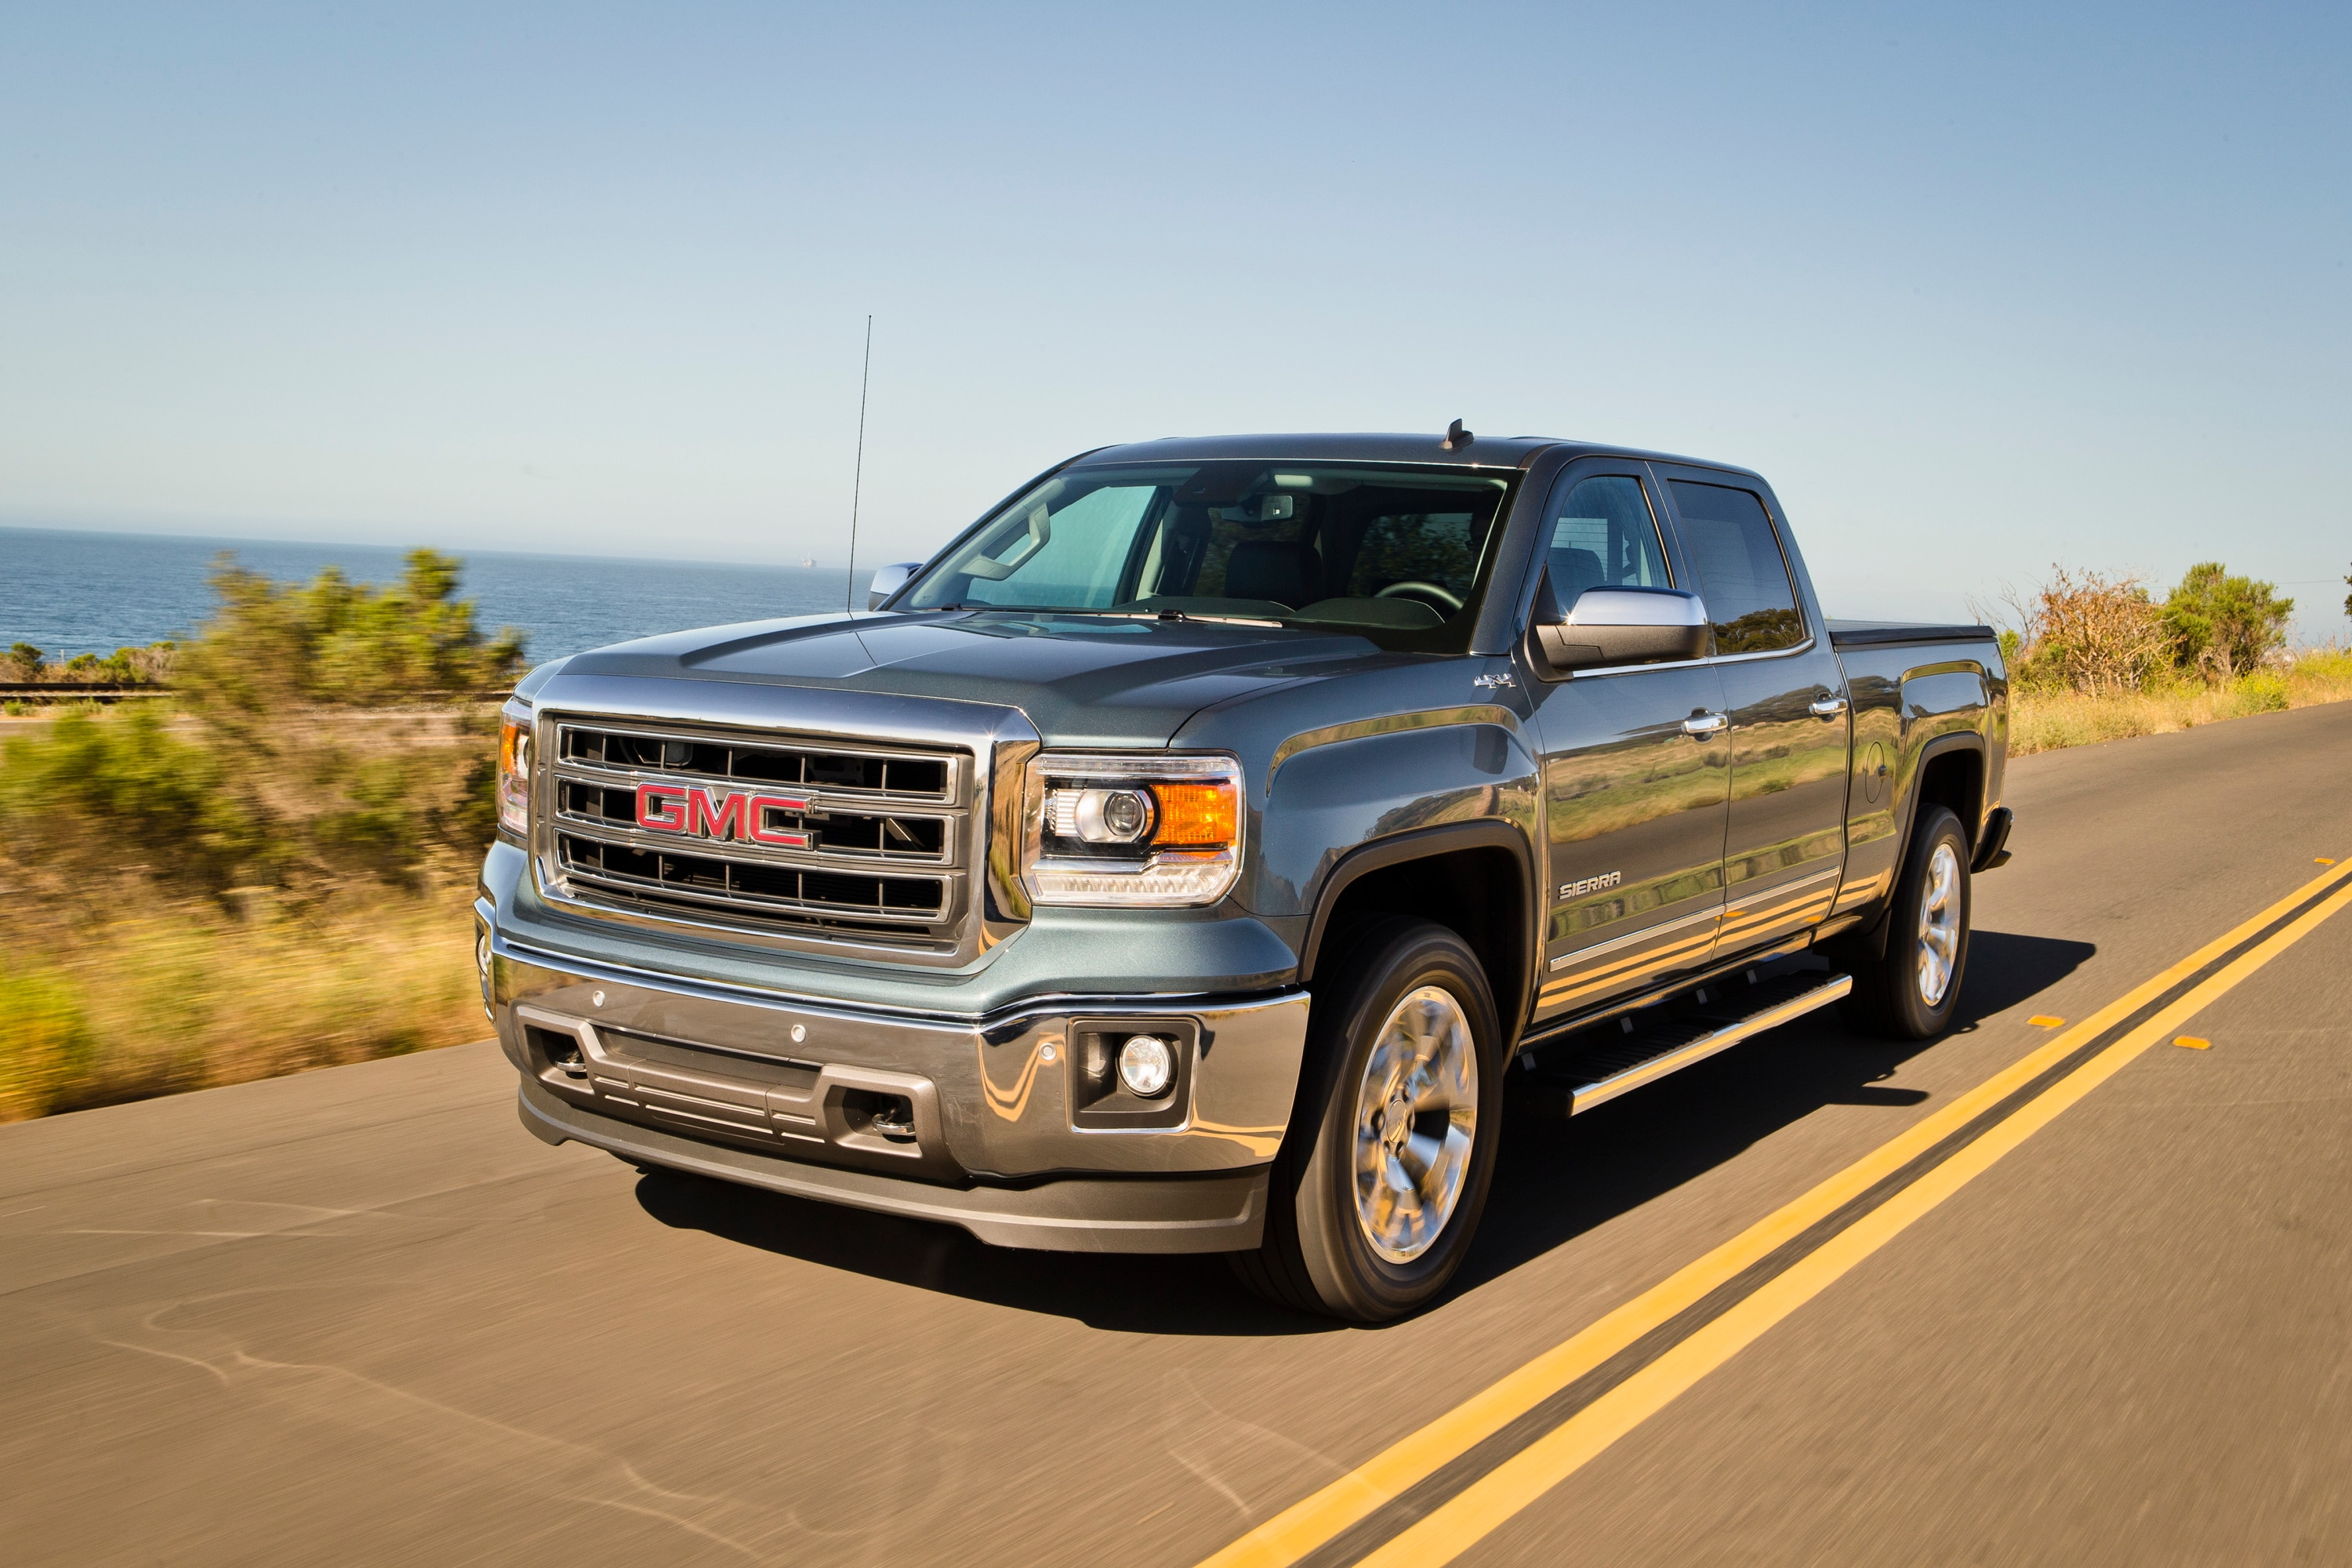 trucks gm sierra authority elevation first garage blog review edition gmc drive